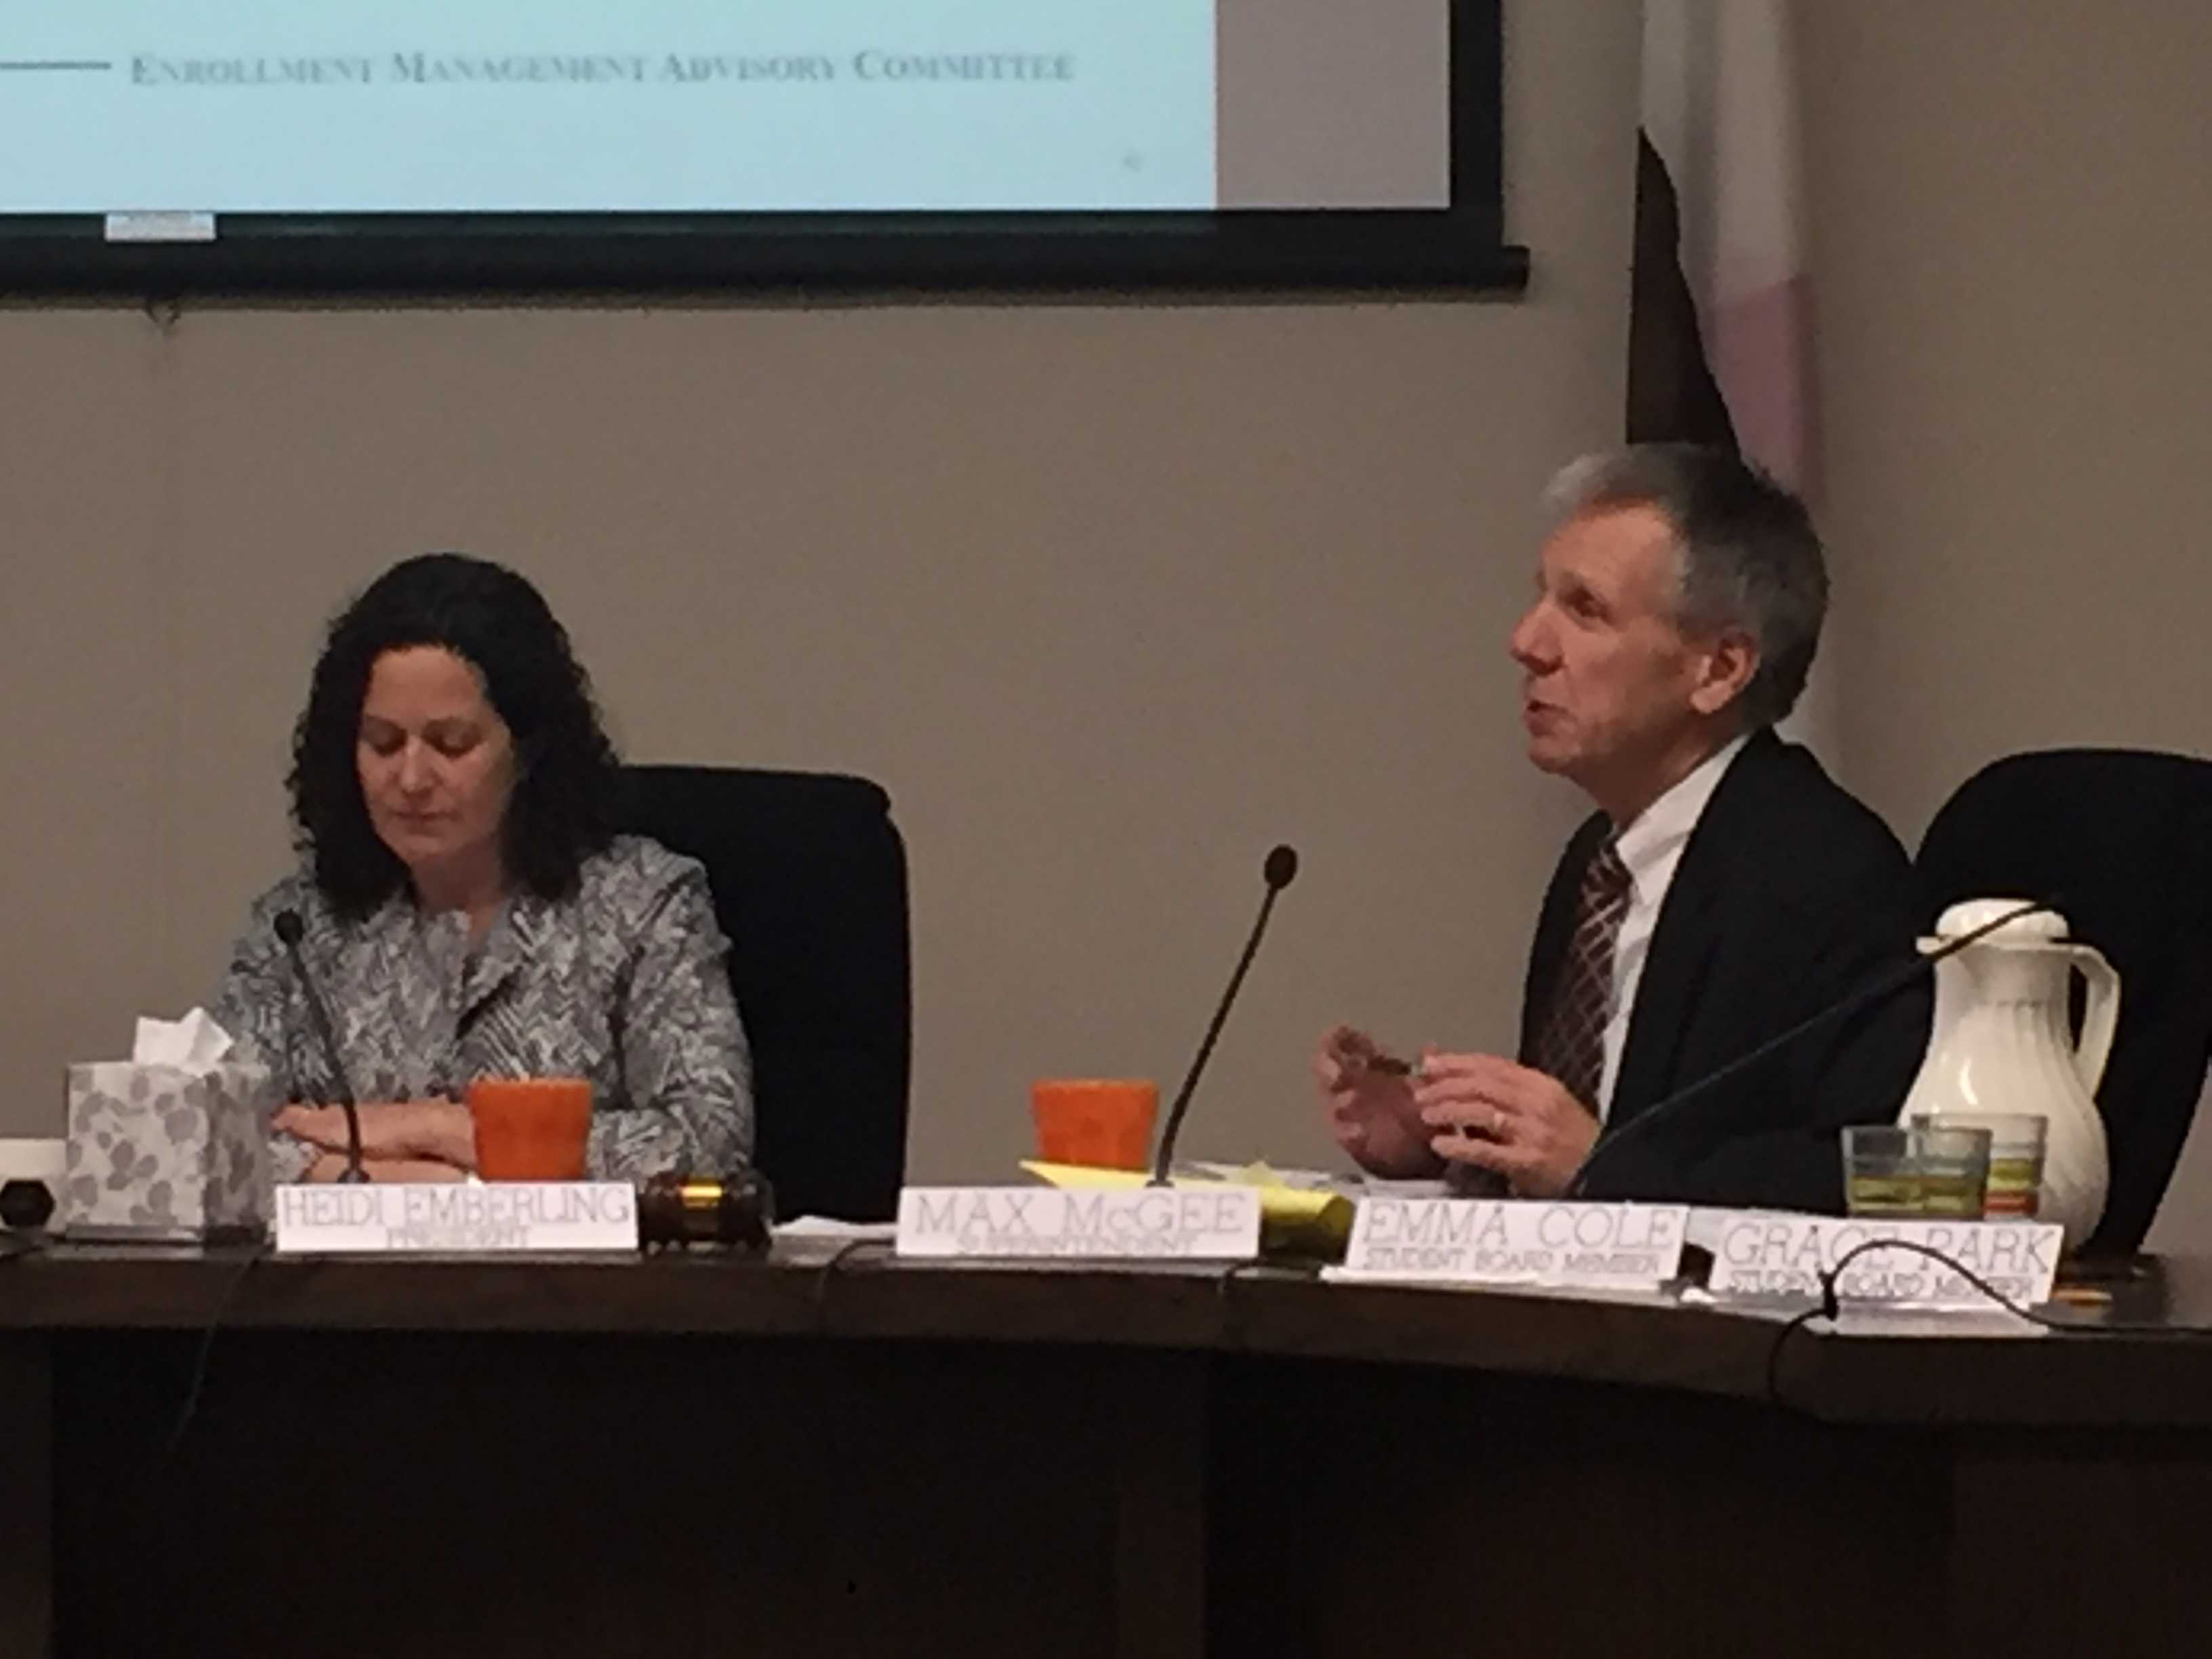 Palo Alto Unified School District Supt. Max McGee adresses the PAUSD Board of Education on Tuesday Jan. 26. McGee emphasized his support for the creation of a new innovative high school at Cubberley to address the problem of overcrowding. Photo by Emma van der Veen.